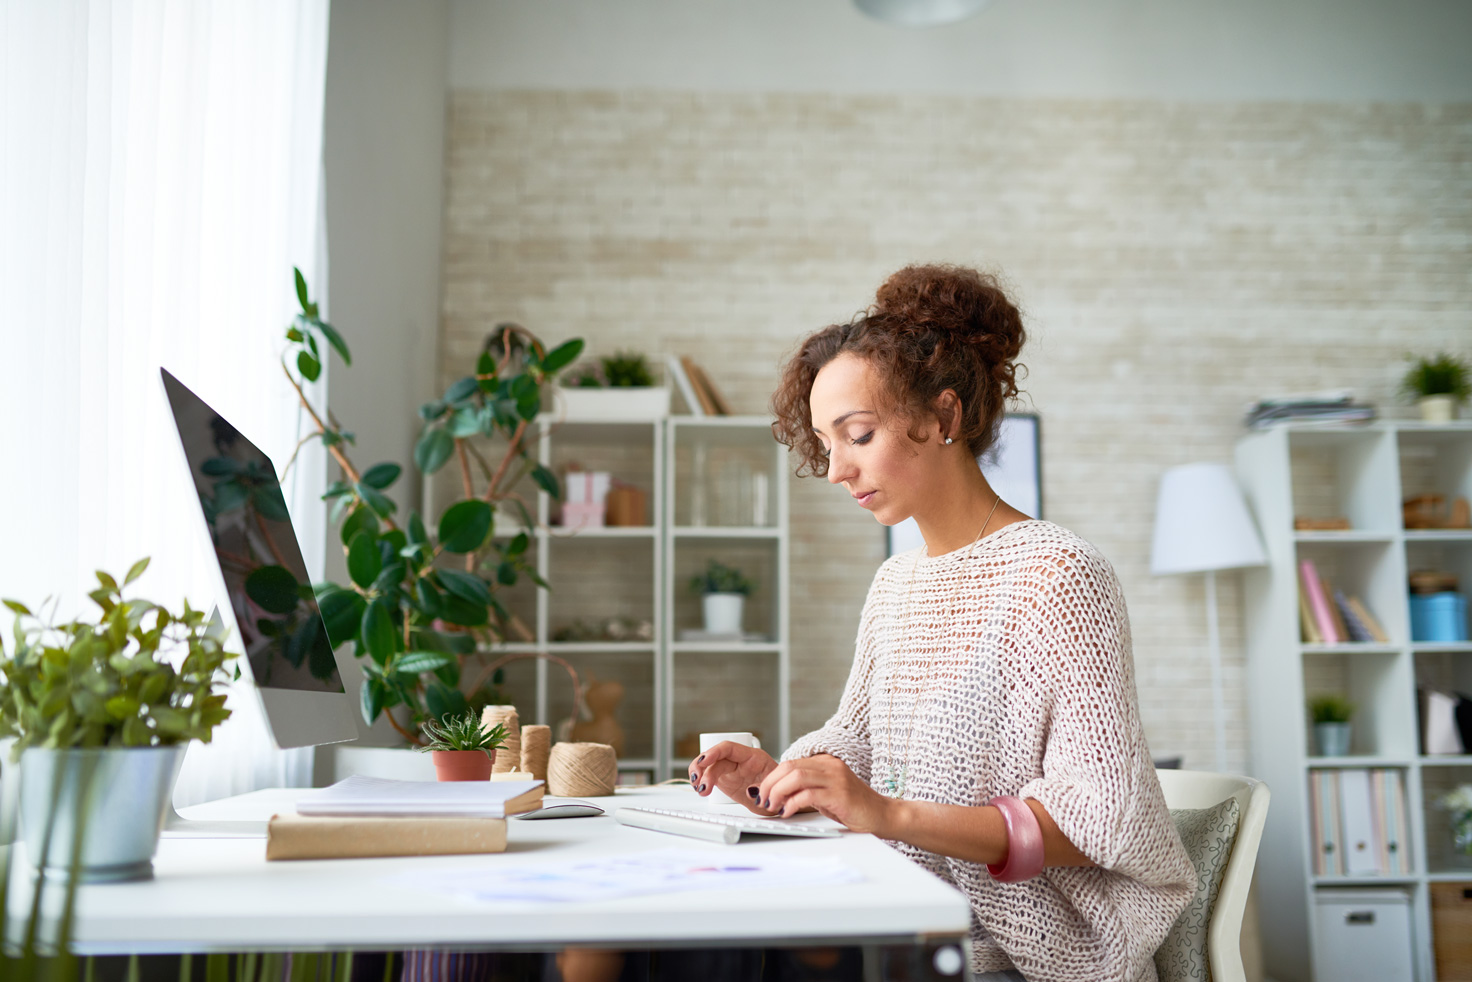 How to Look Professional When Working From Home